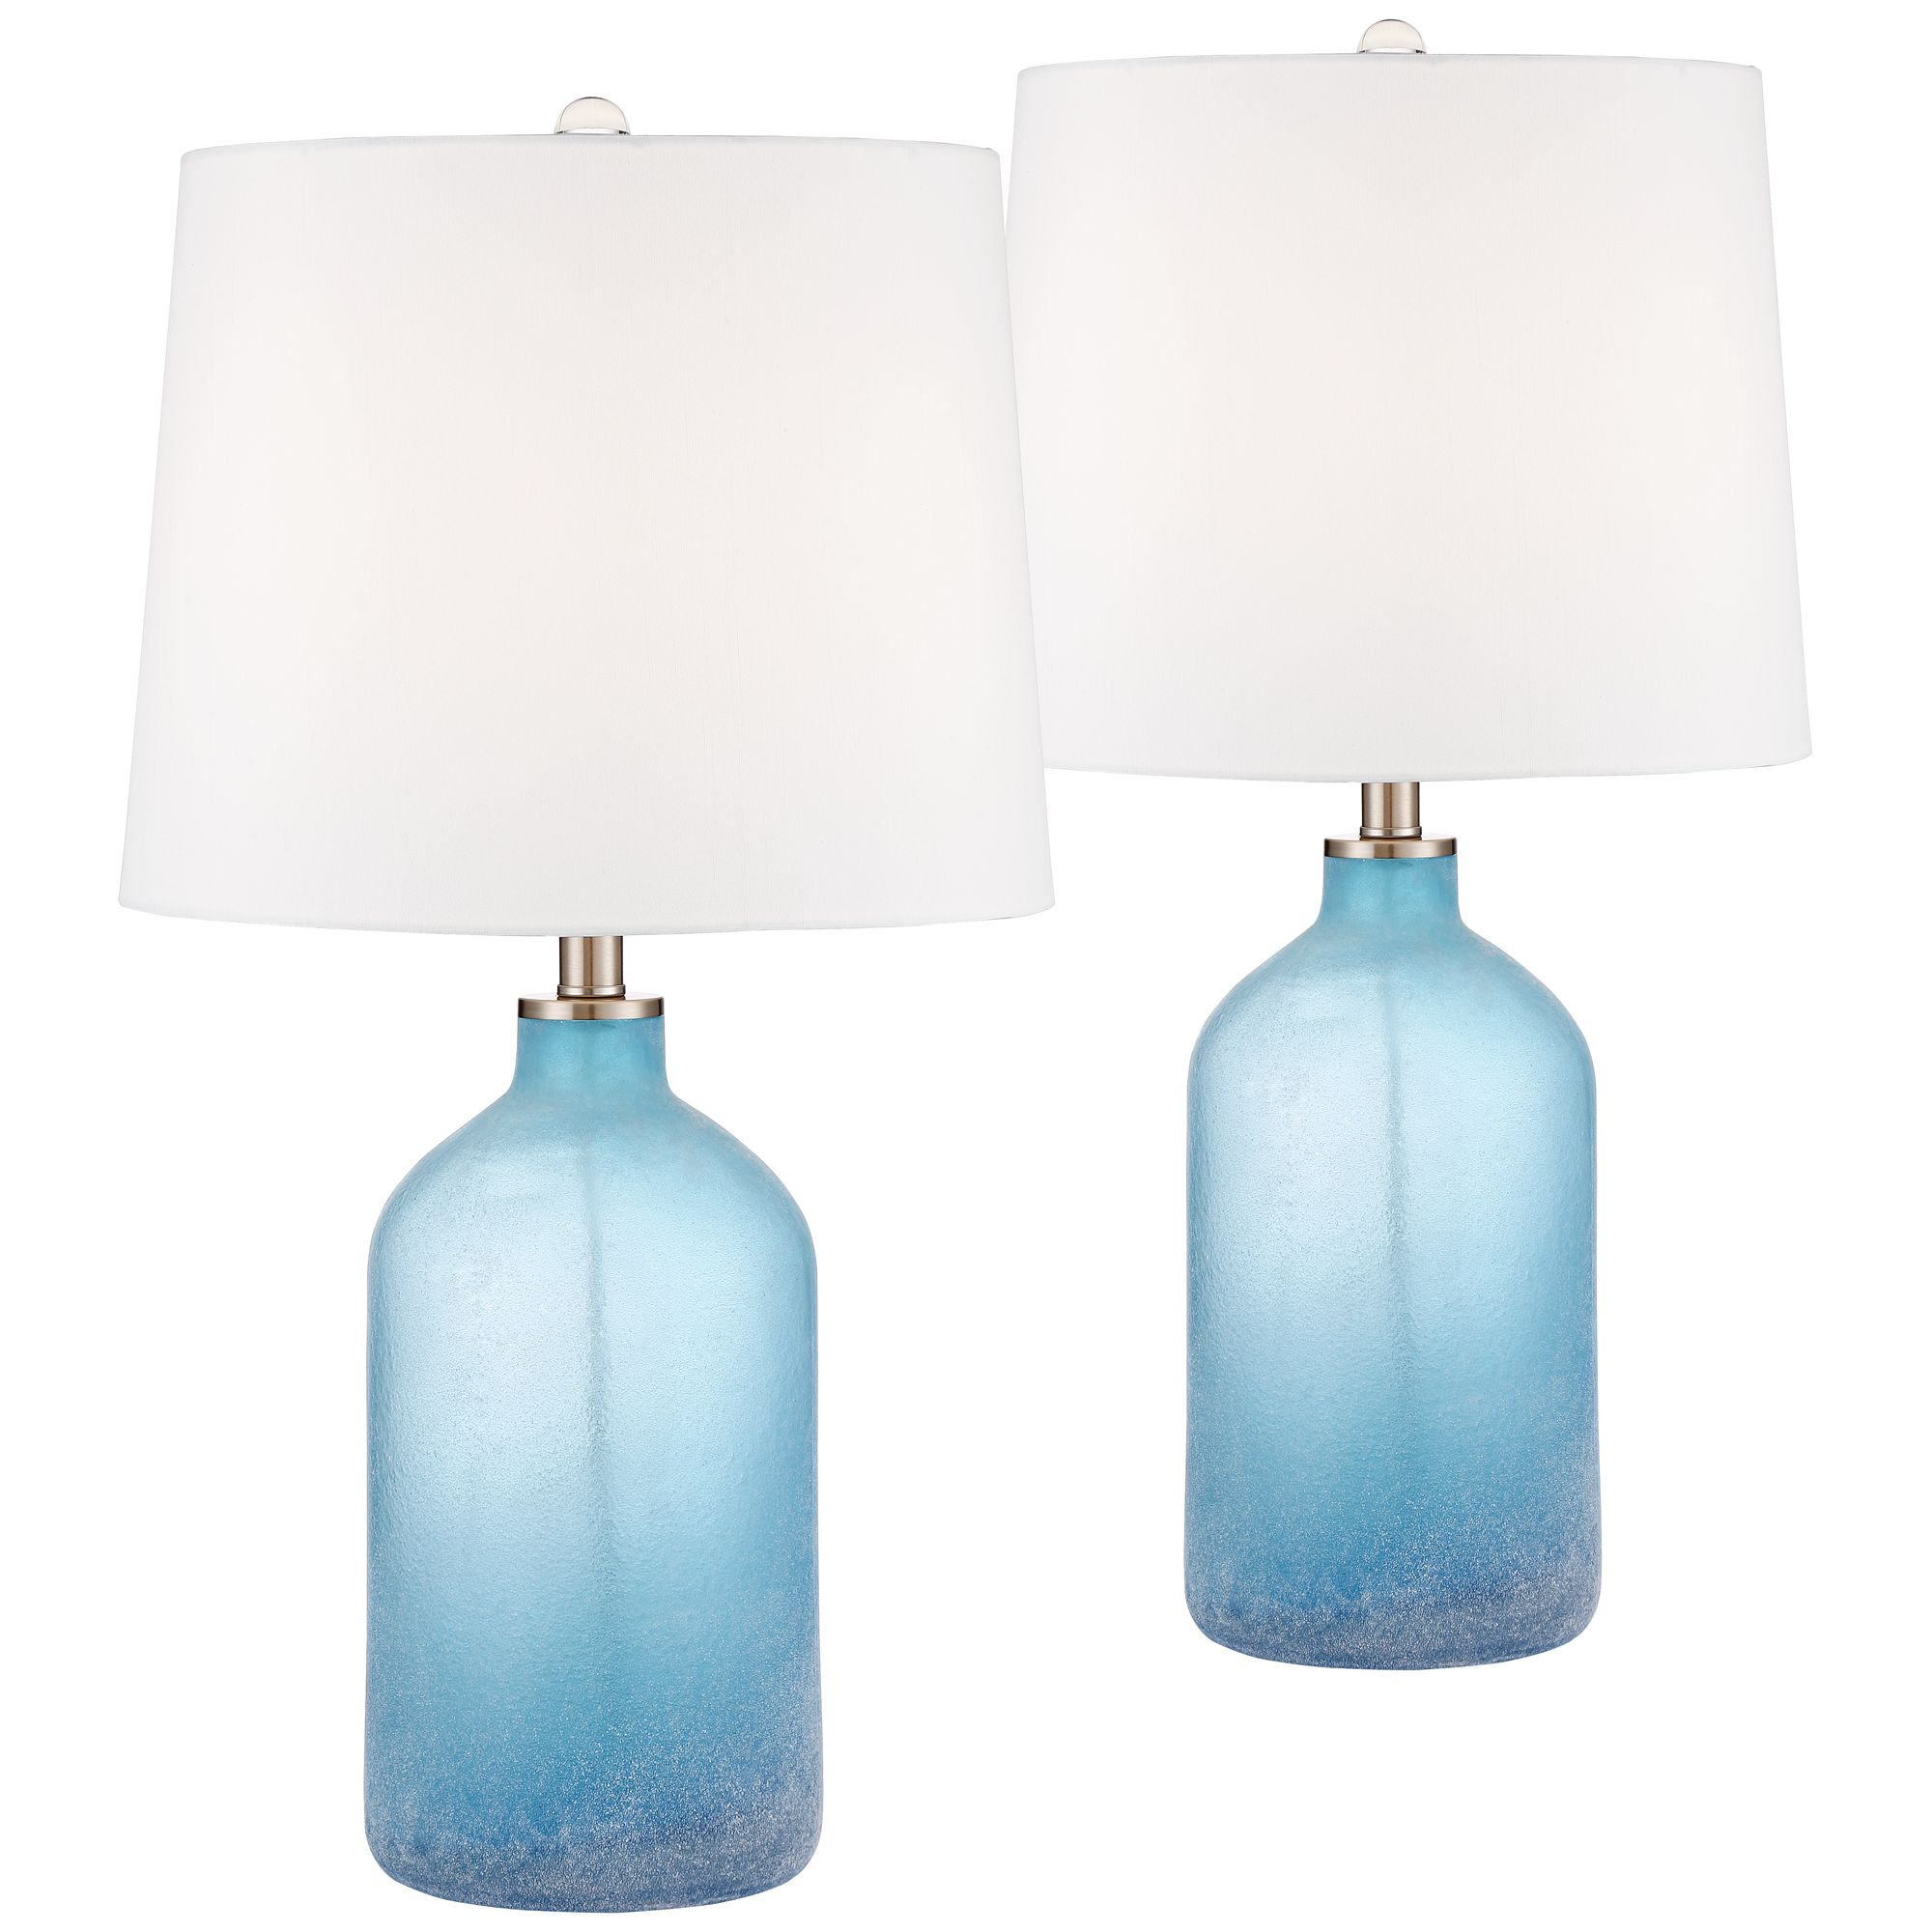 Coastal Lamps 360 Lighting Coastal Table Lamps Set Of 2 Frosted Sea Blue Glass White Drum Shade For Living Room Family Bedroom Nightstand